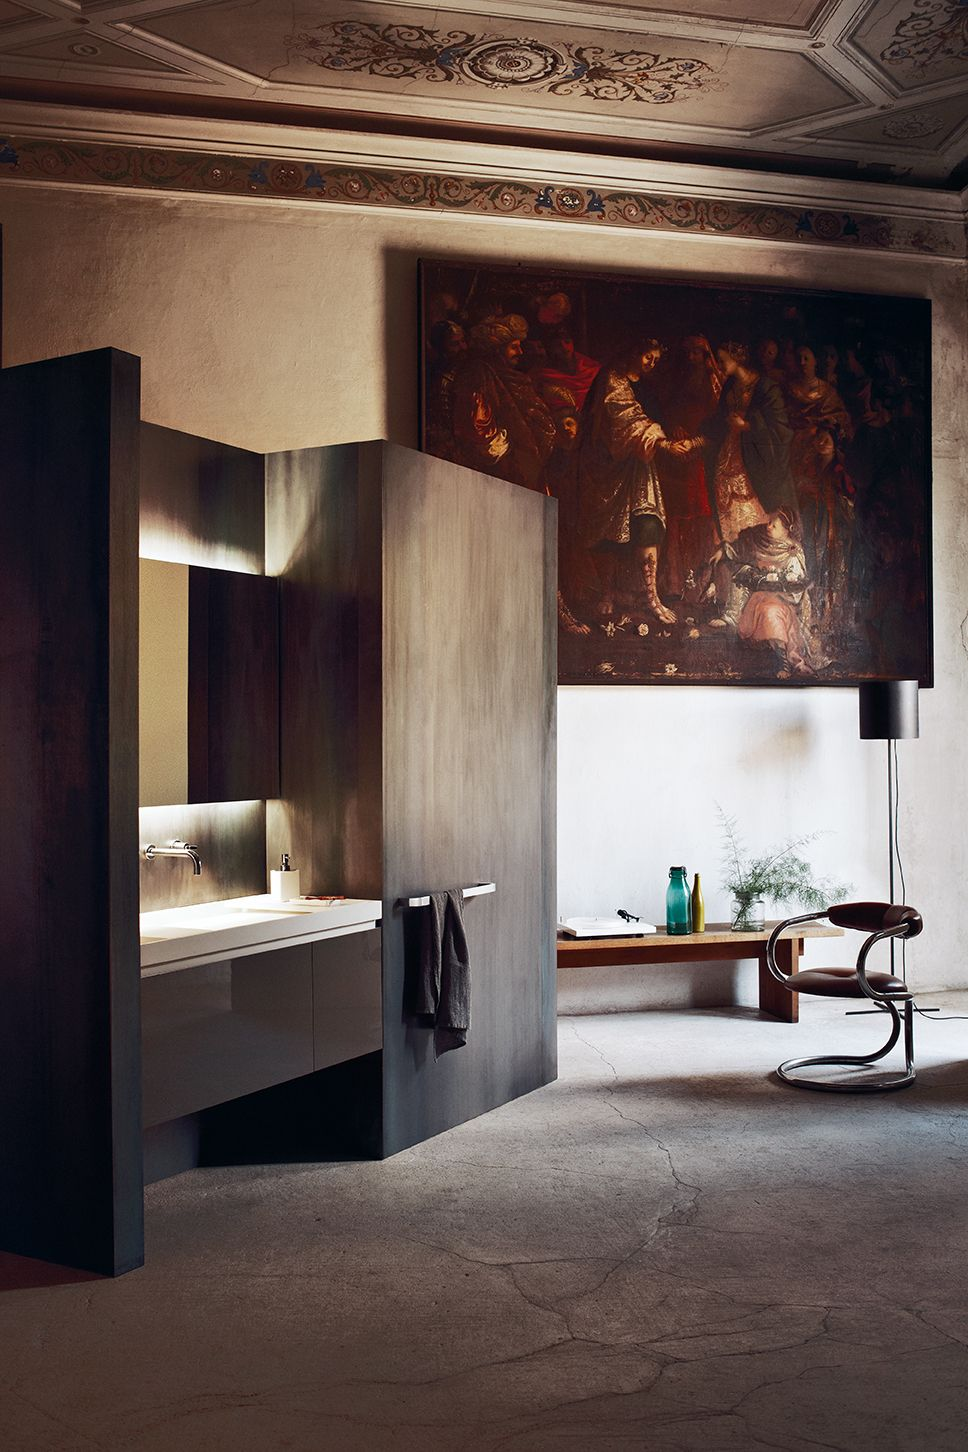 Just Me And A Landscape To Be Contemplated At The Silence Of The Dawn Evo E1 Programme F With Images Bathroom Design Inspiration Bathroom Interior Design Bathroom Design